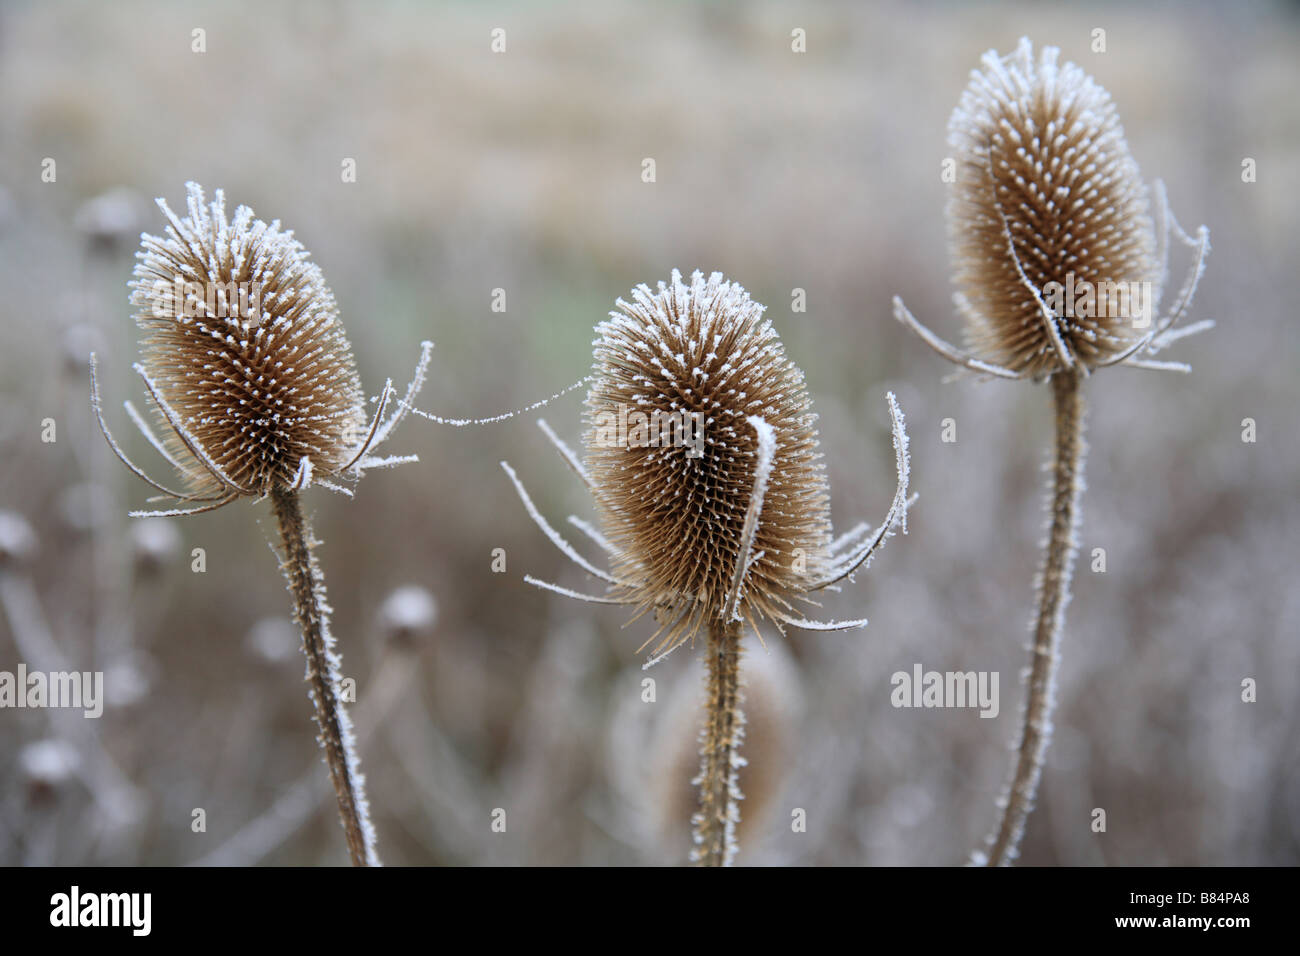 Three Teasel heads, small group of frost covered flower heads in a garden. - Stock Image